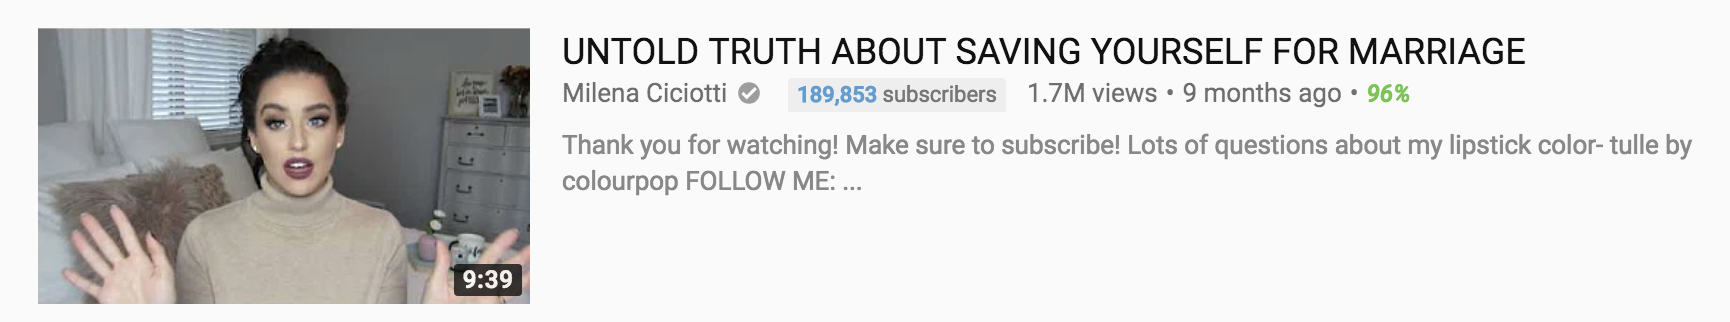 A video with close to 2 million views sharing the untold secrets of saving yourself for marriage